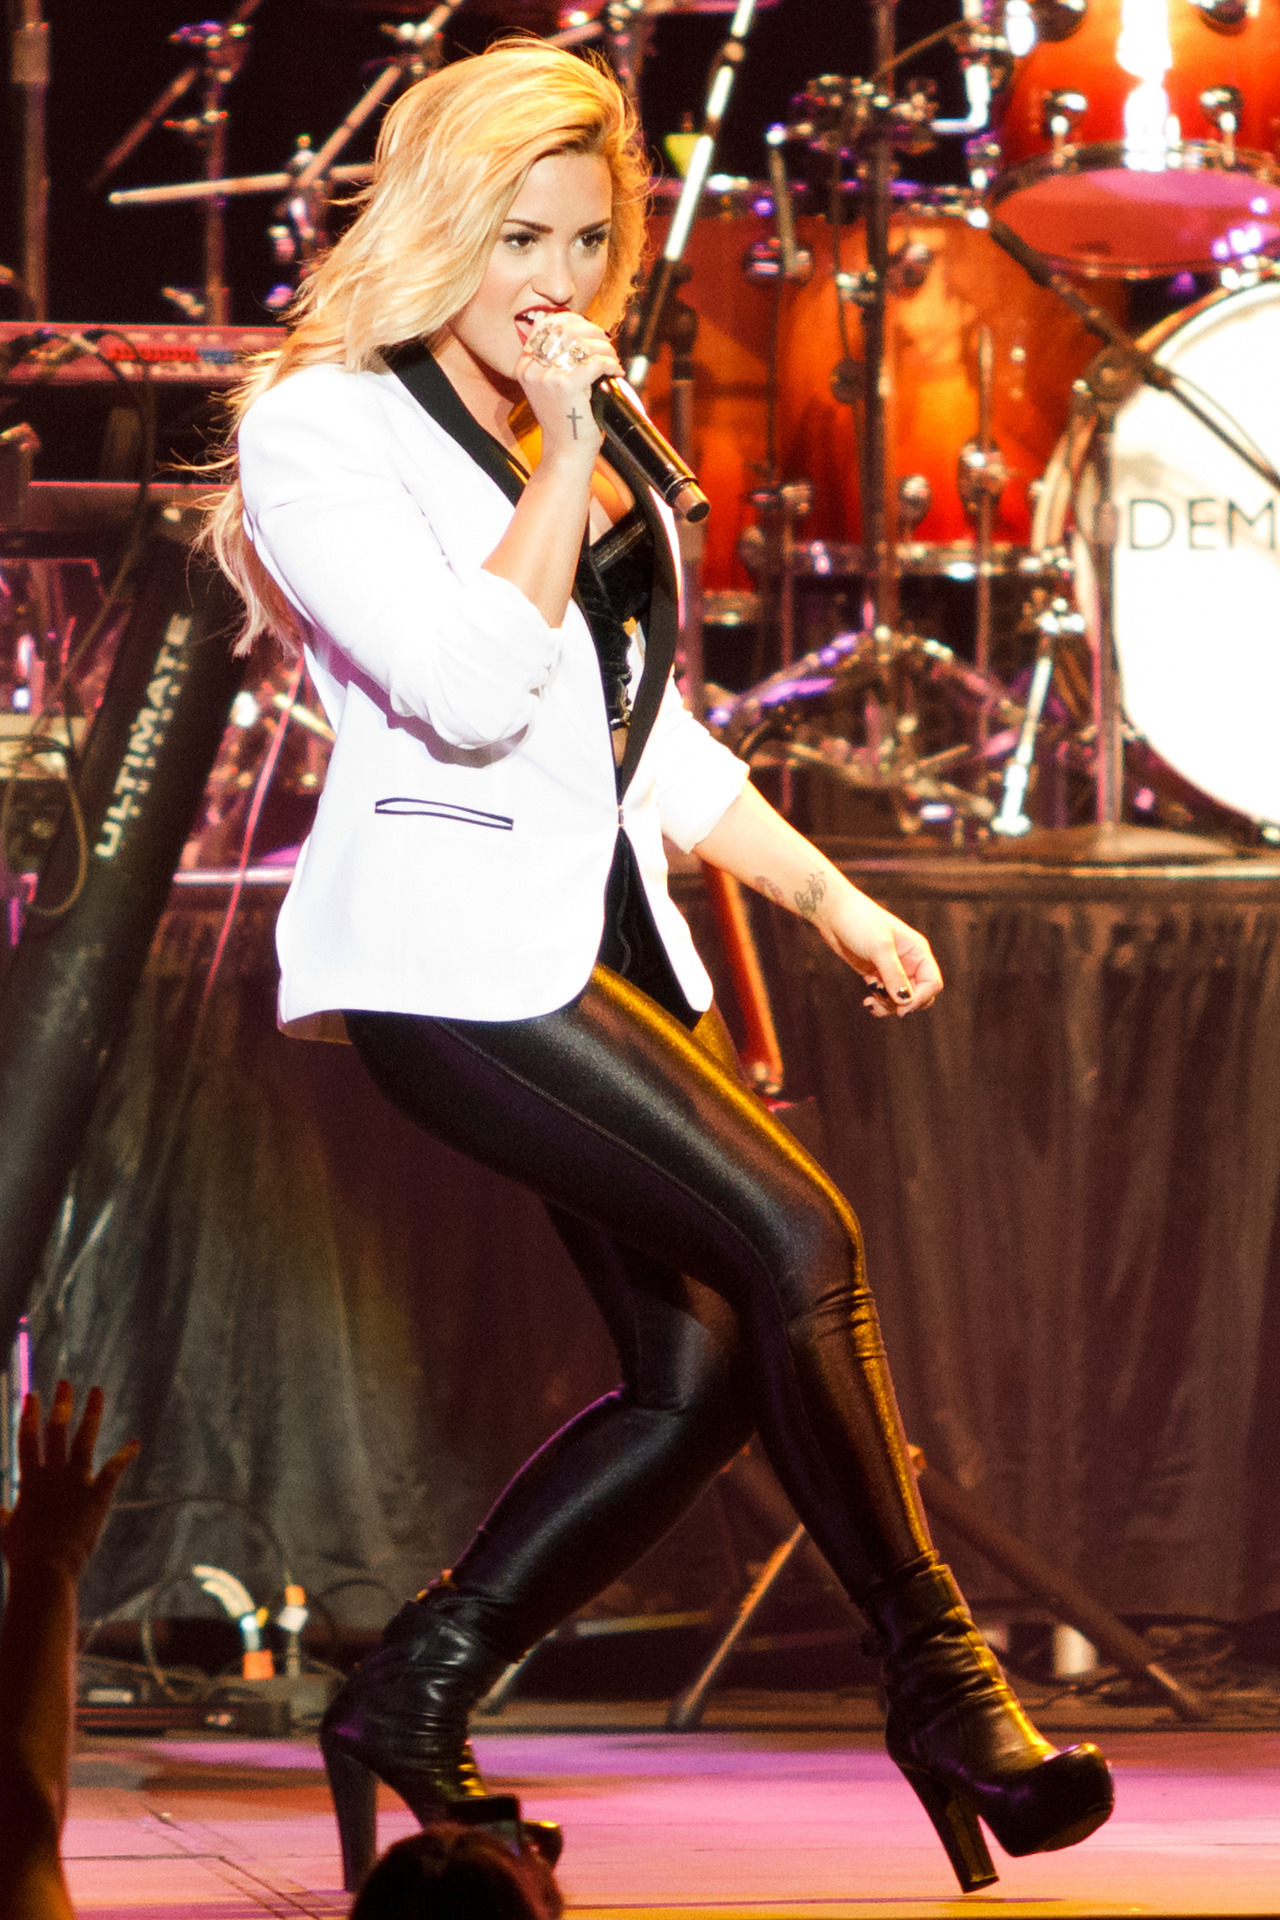 [Gallery] Demi Lovato at the Minnesota State Fair yesterday.